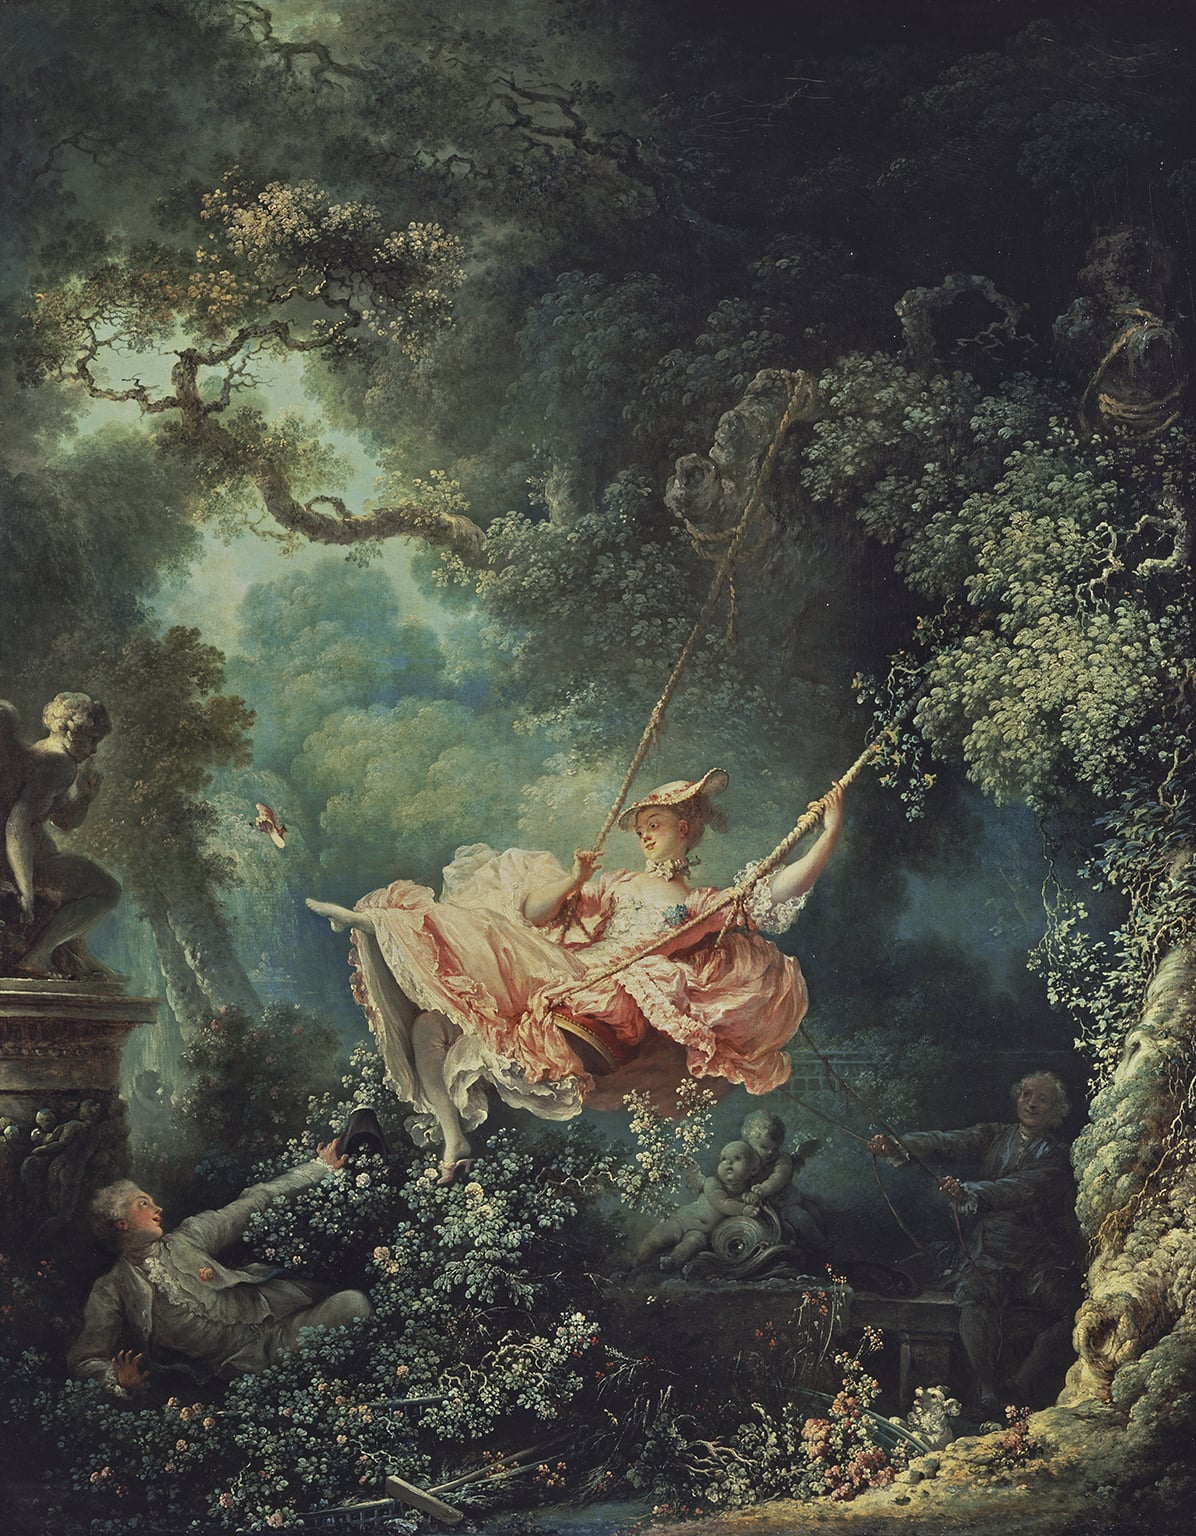 4. Jean-Honore Fragonard, The Swing, 1767 (Frame Art Funded in 1974). The Wallace Collection, London - © The Wallace Collection